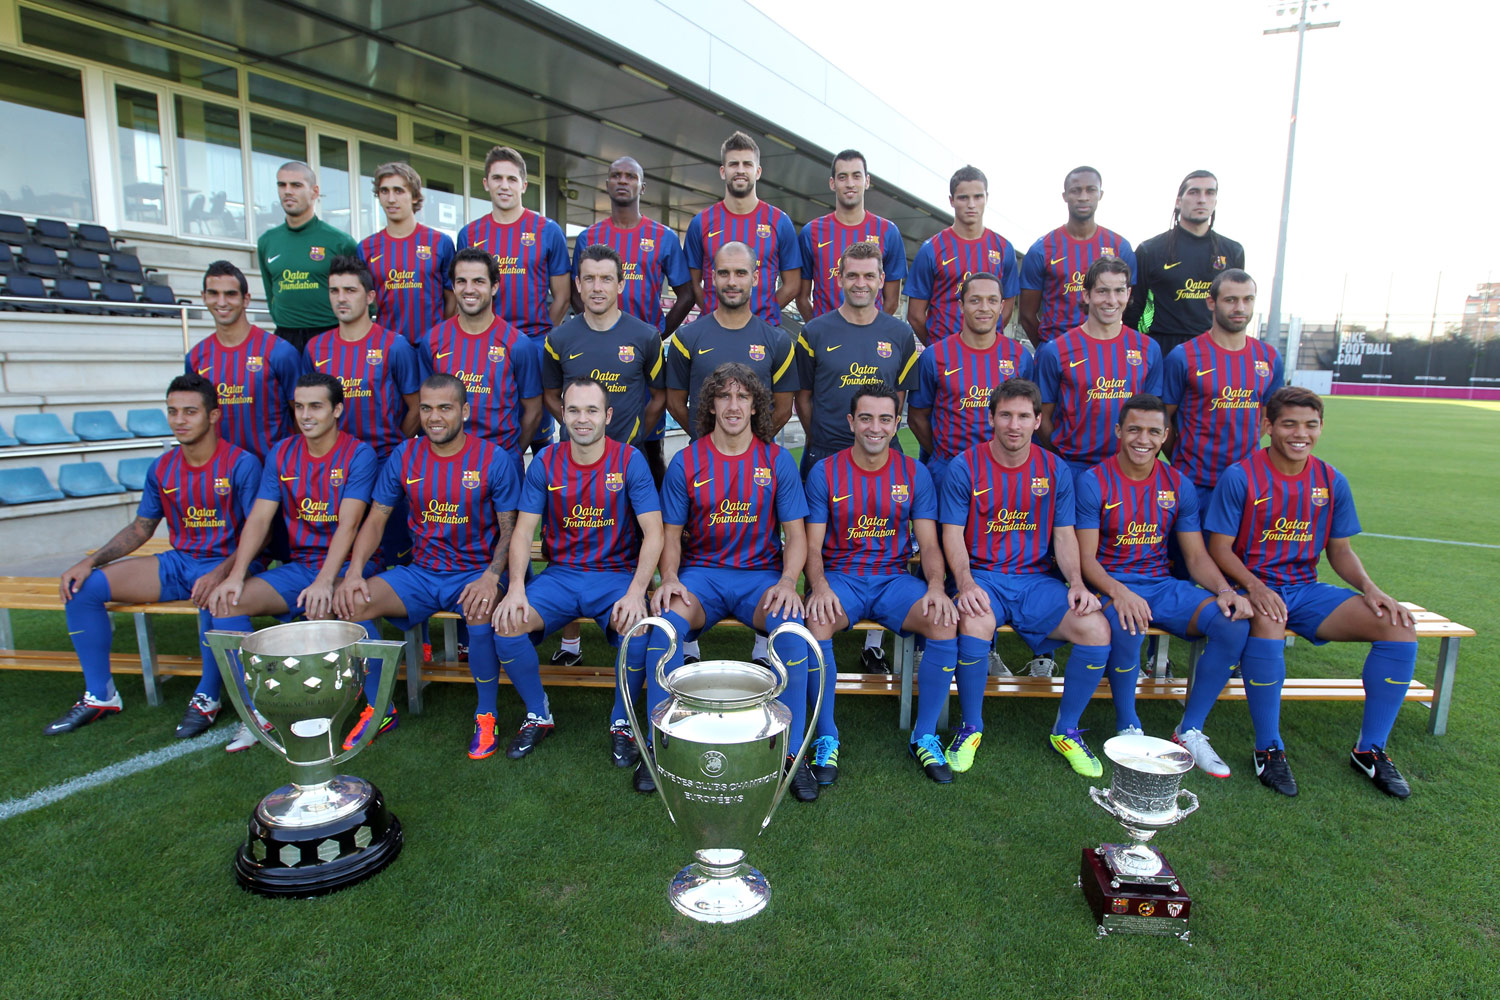 Barcelona The Best Football Club In Europe 2012 - Best Football Club picture wallpaper image